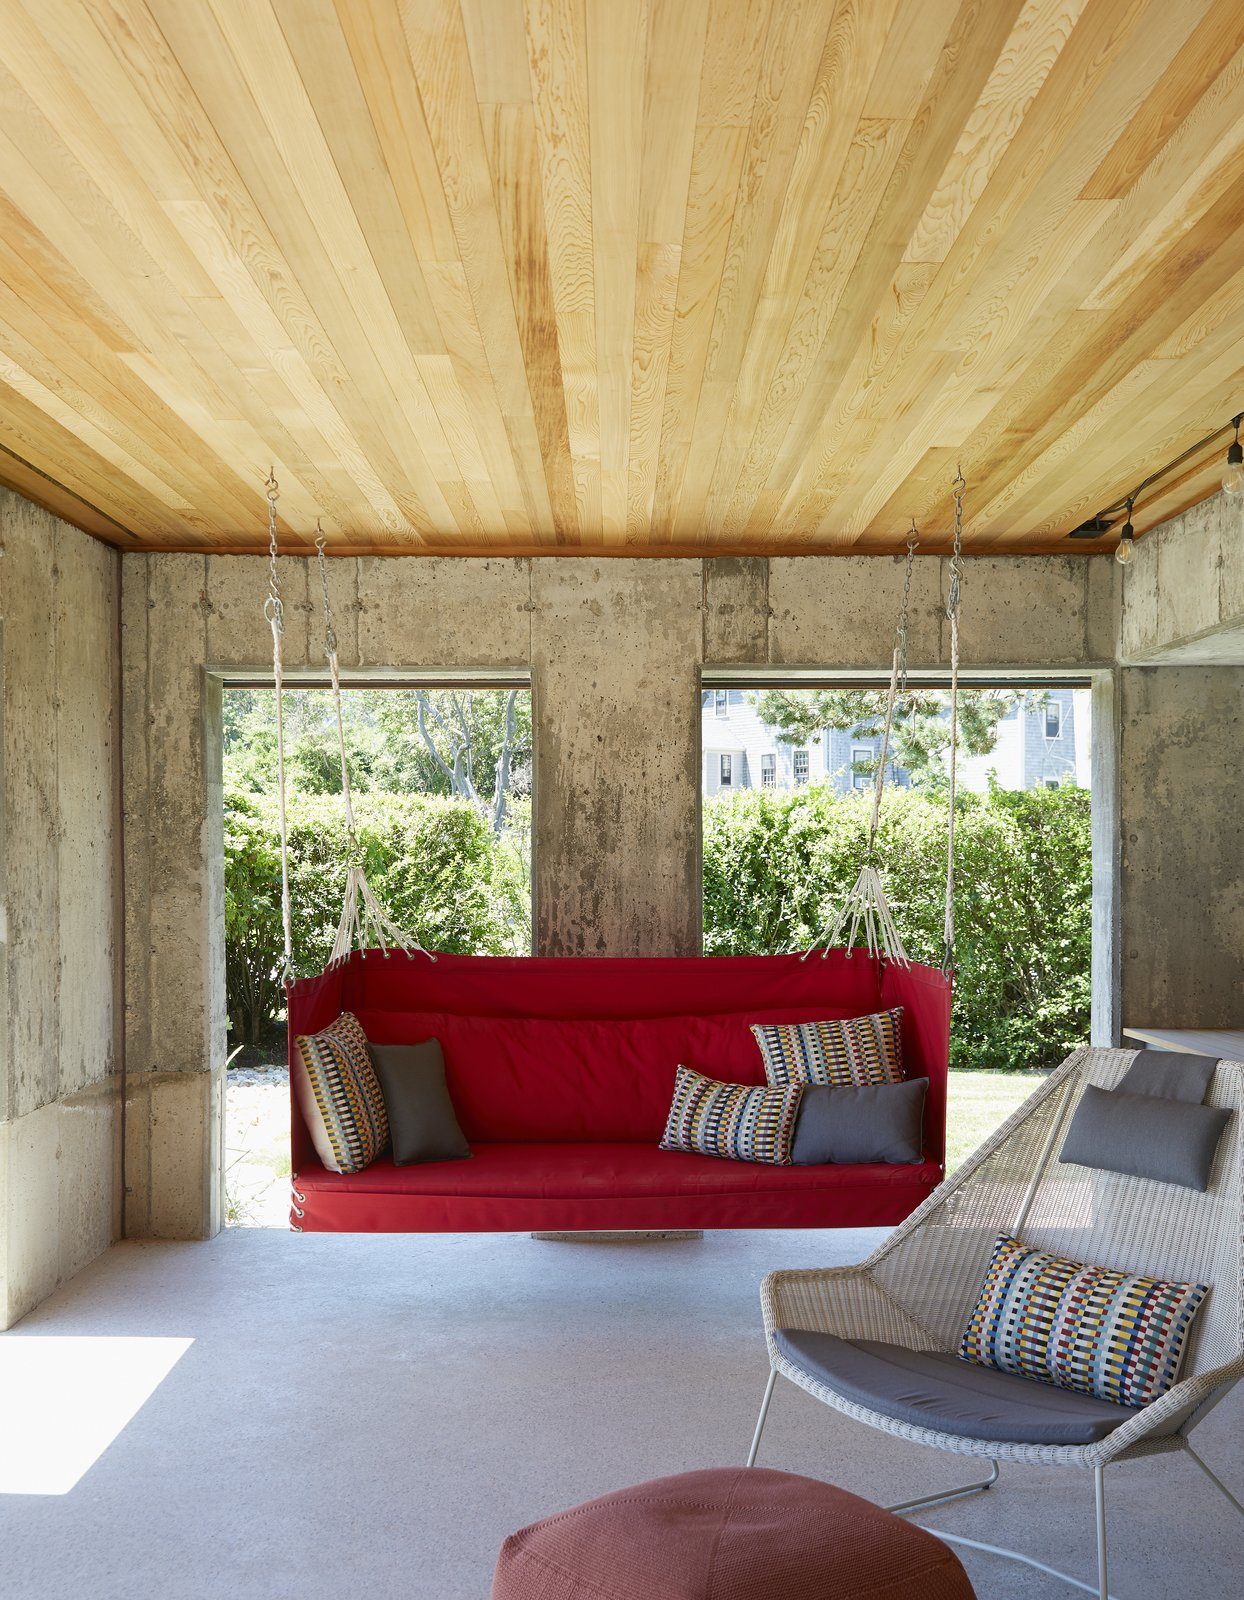 Living Room, Concrete Floor, Chair, and Ottomans A Penobscot Bay swing hangs beside the dining table in the porch. - Rockport, Massachusetts Dwell Magazine : November / December 2017  Best Photos from On the Coast of Massachusetts, a Prefab Ranch Is Totally Overhauled for a Wheelchair-User